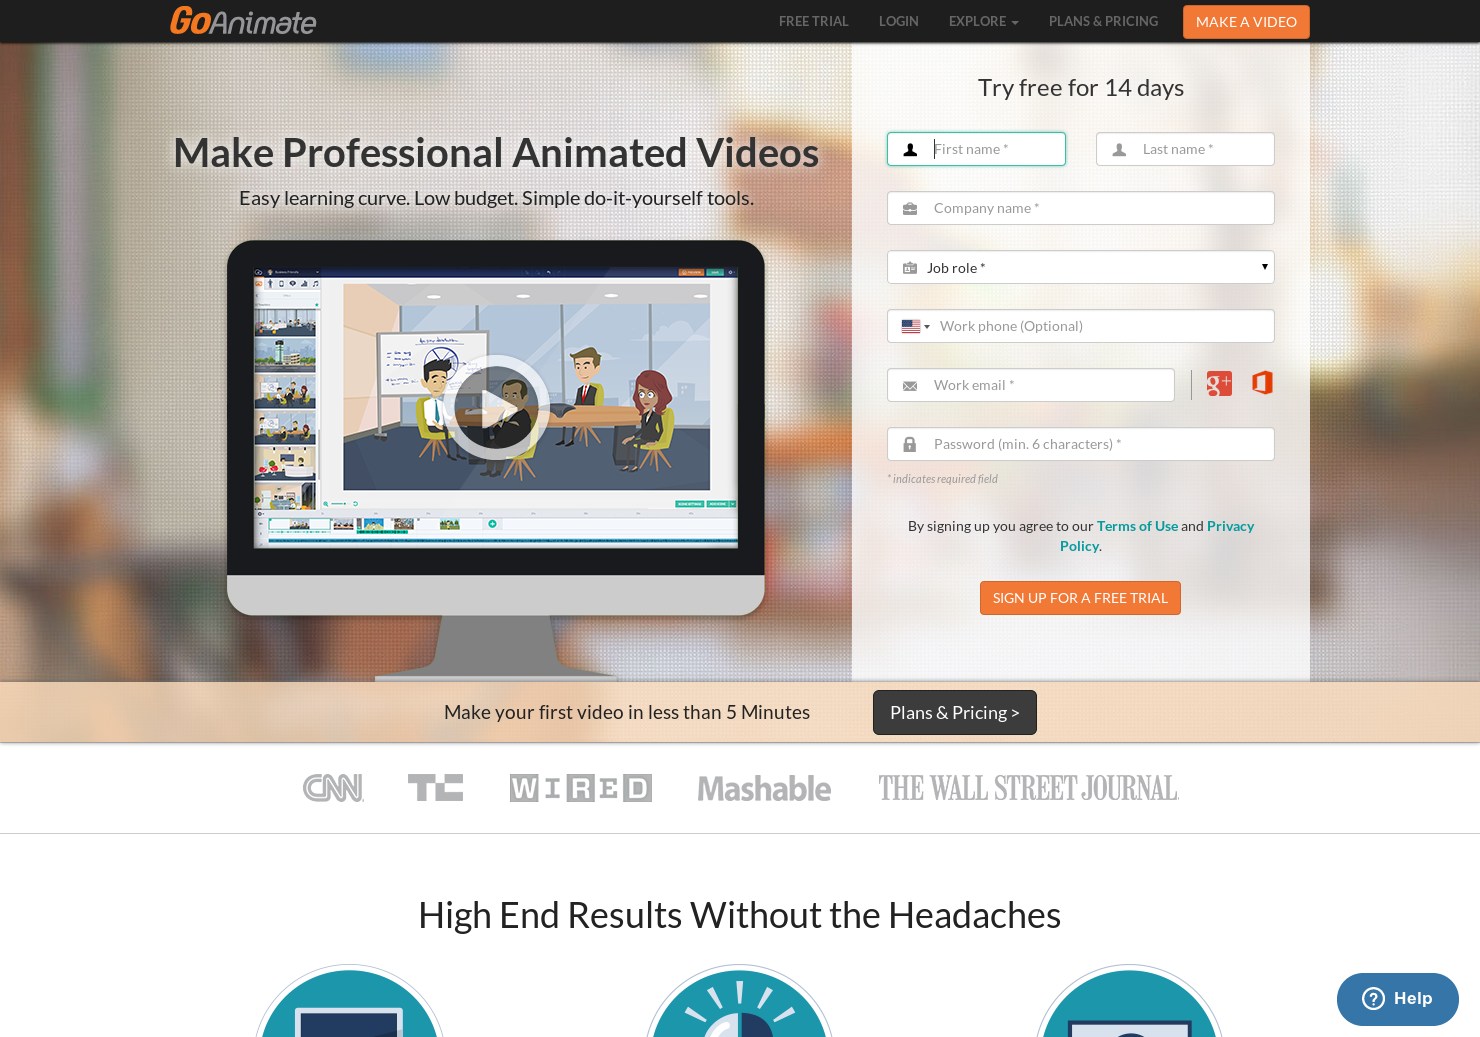 Go Animate - Make Professional Animated Videos with simple